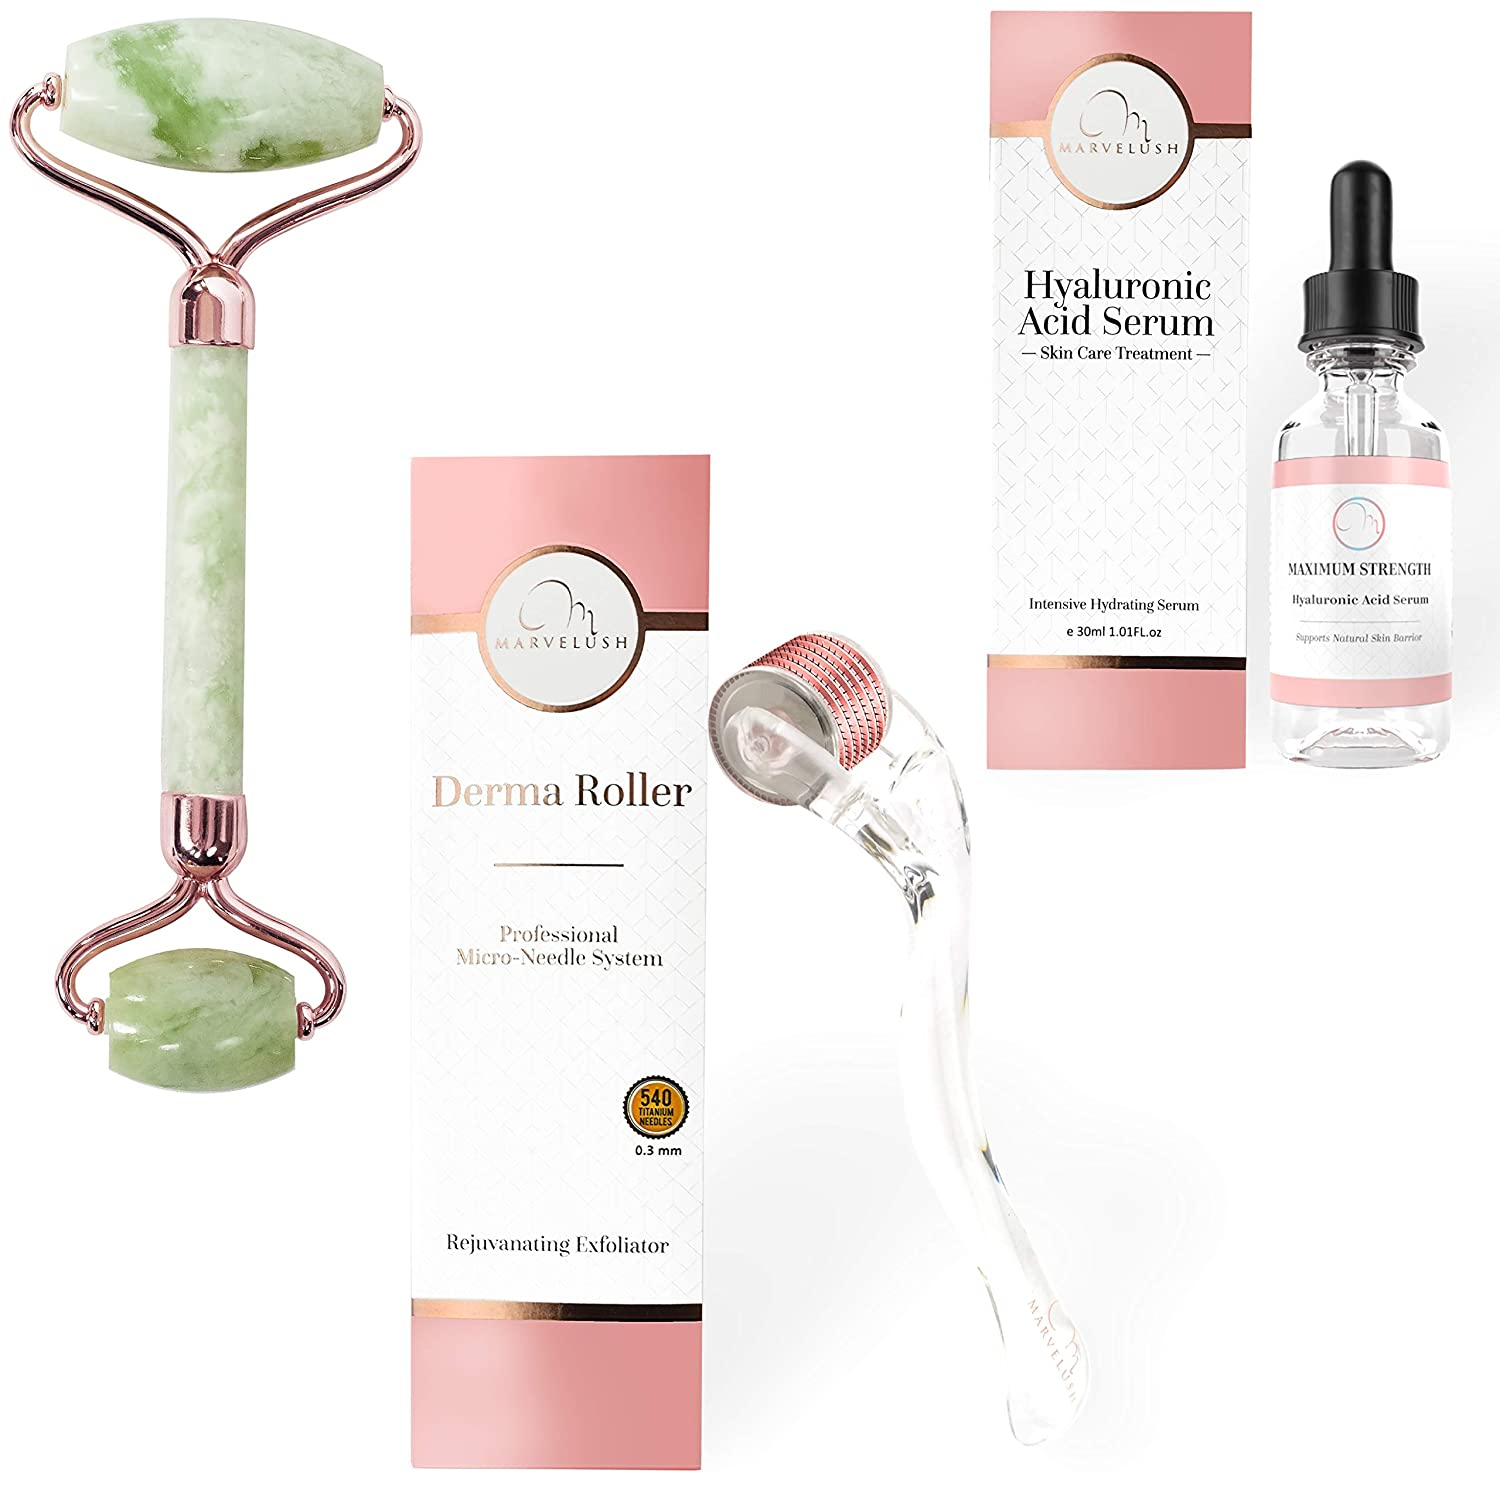 Derma Roller, Jade Roller, Hyaluronic Acid Serum | 6 in 1 Facial Kit | 540 Titanium Microneedles 0.3mm | Ebook | Disinfectant Cup | Travel Bag | ✨Marvelush Skincare ✨